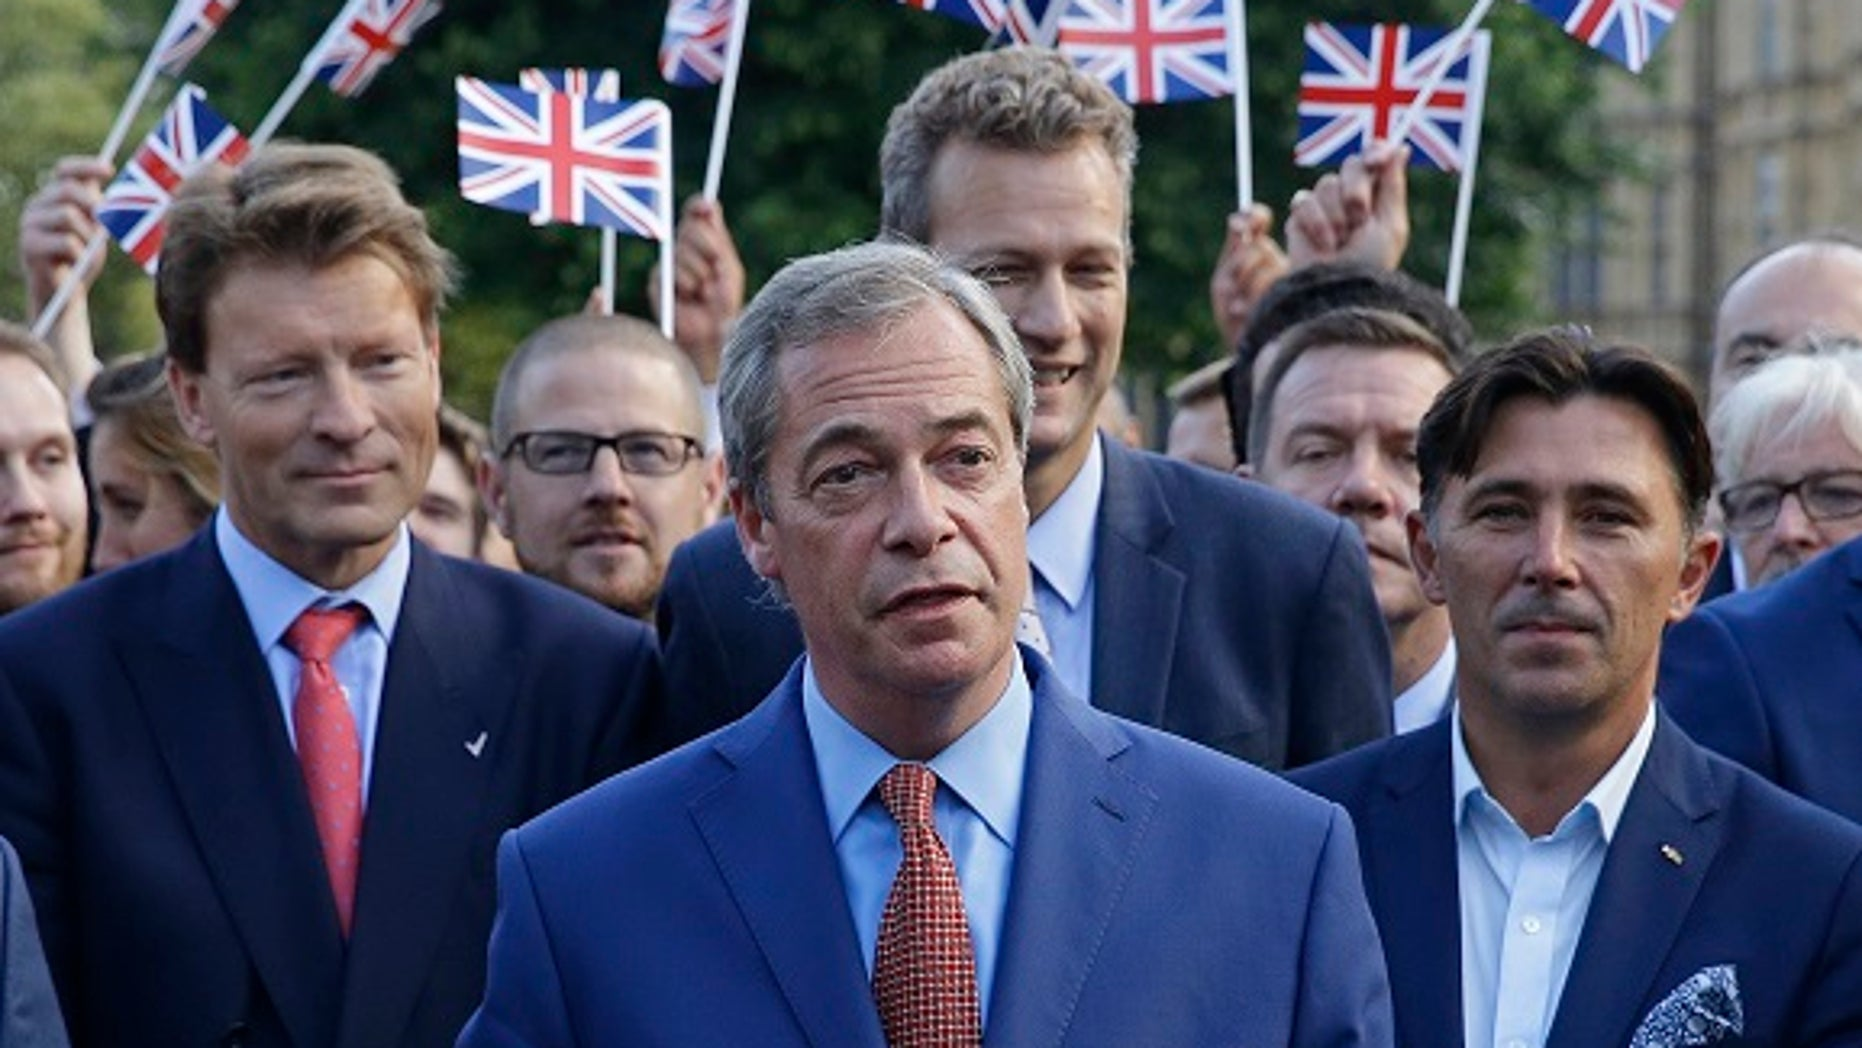 Nigel Farage suggested the UK should hold a second 'Brexit' vote to end 'whining' by politicians who opposed leaving the European Union.